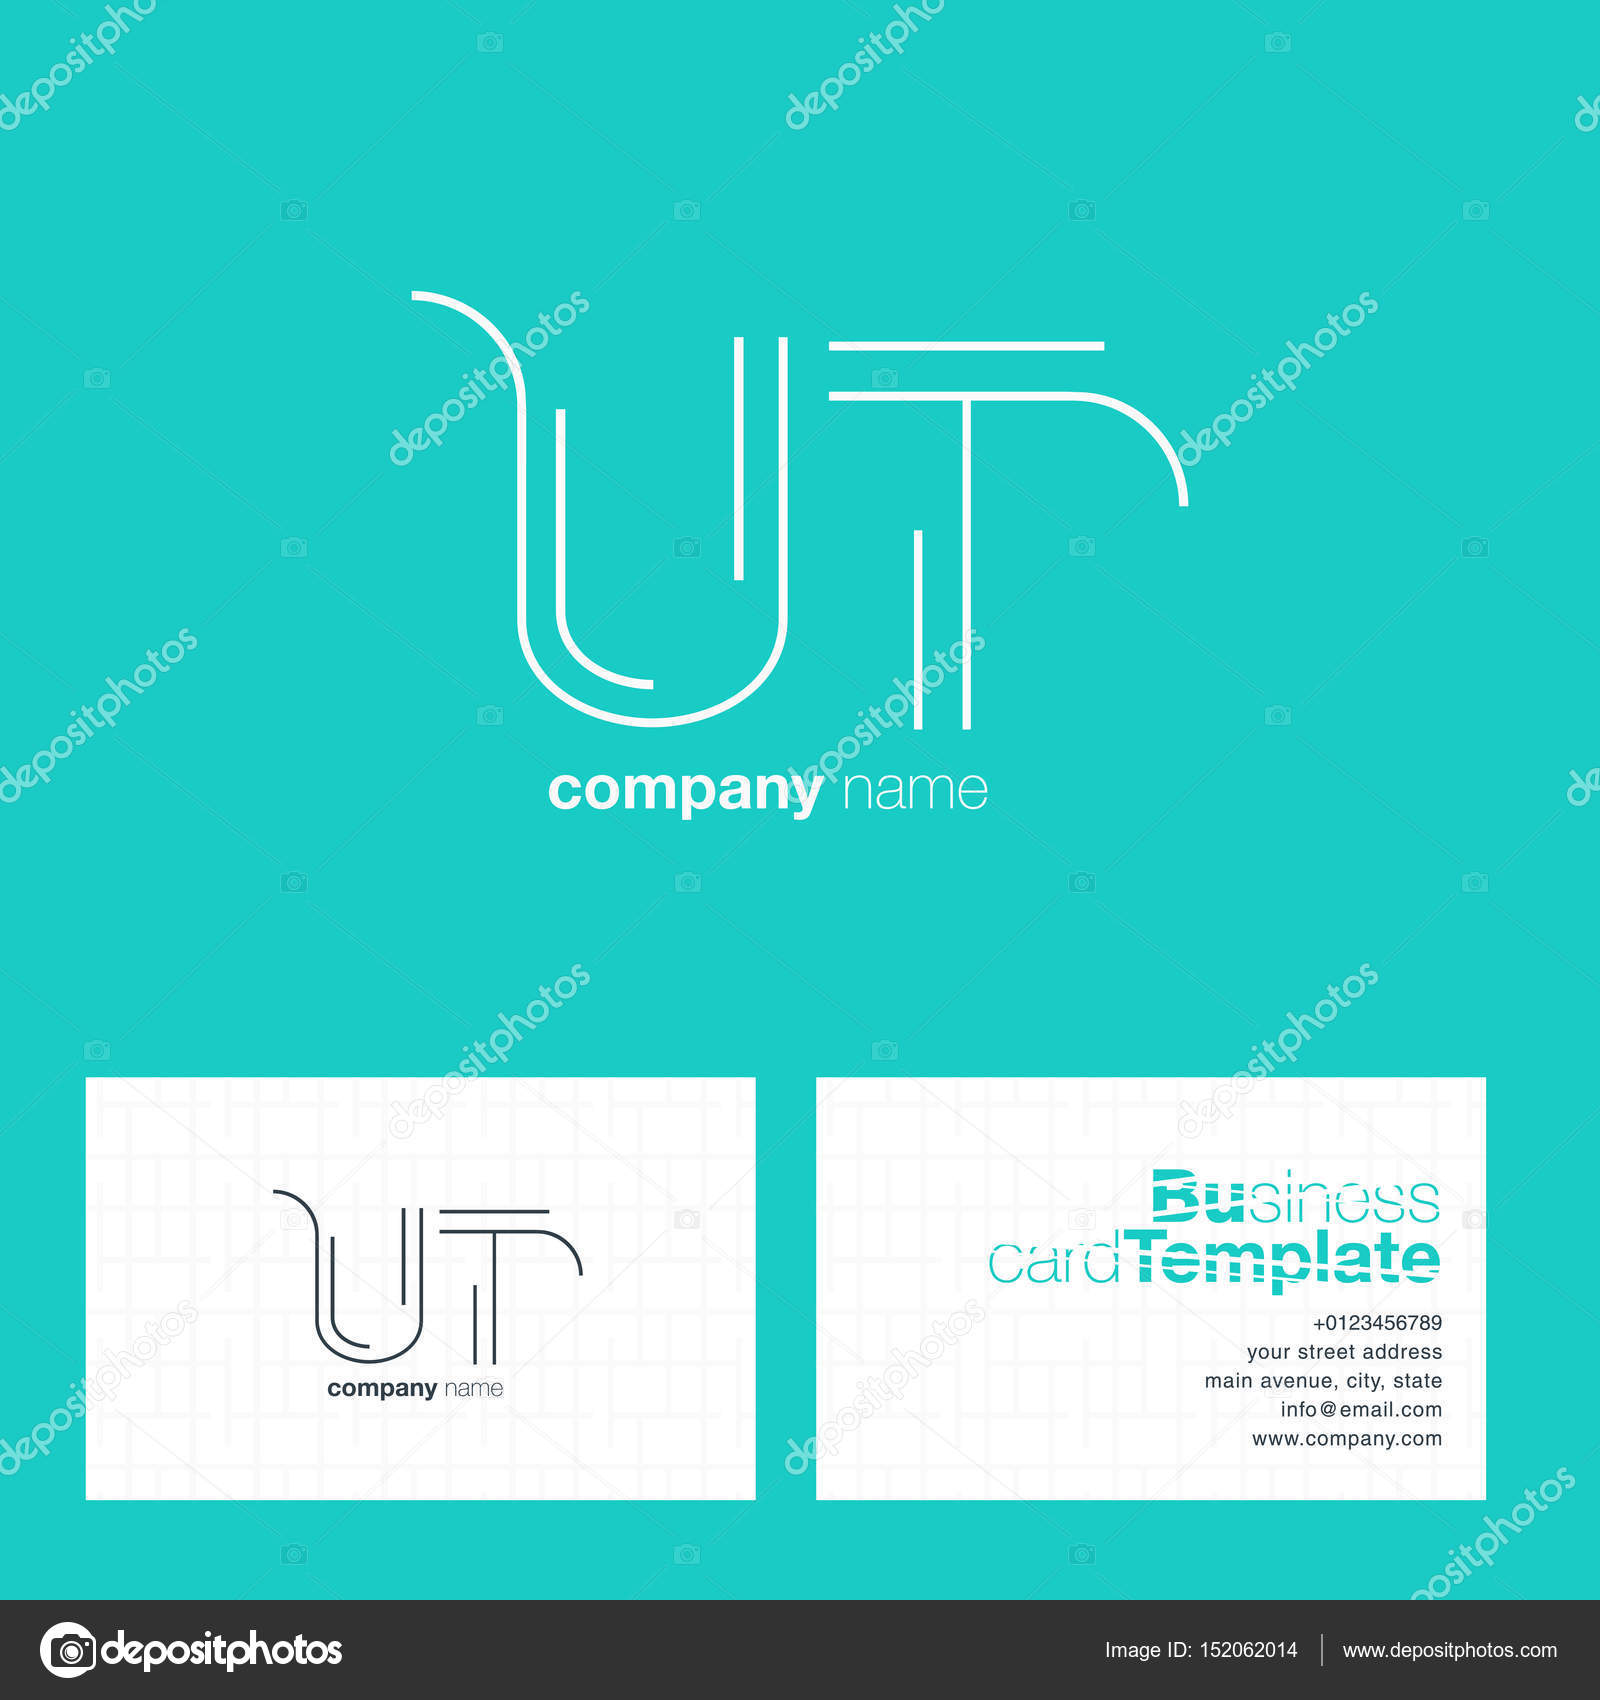 Ut letters logo business card stock vector brainbistro 152062014 ut letters logo business card stock vector colourmoves